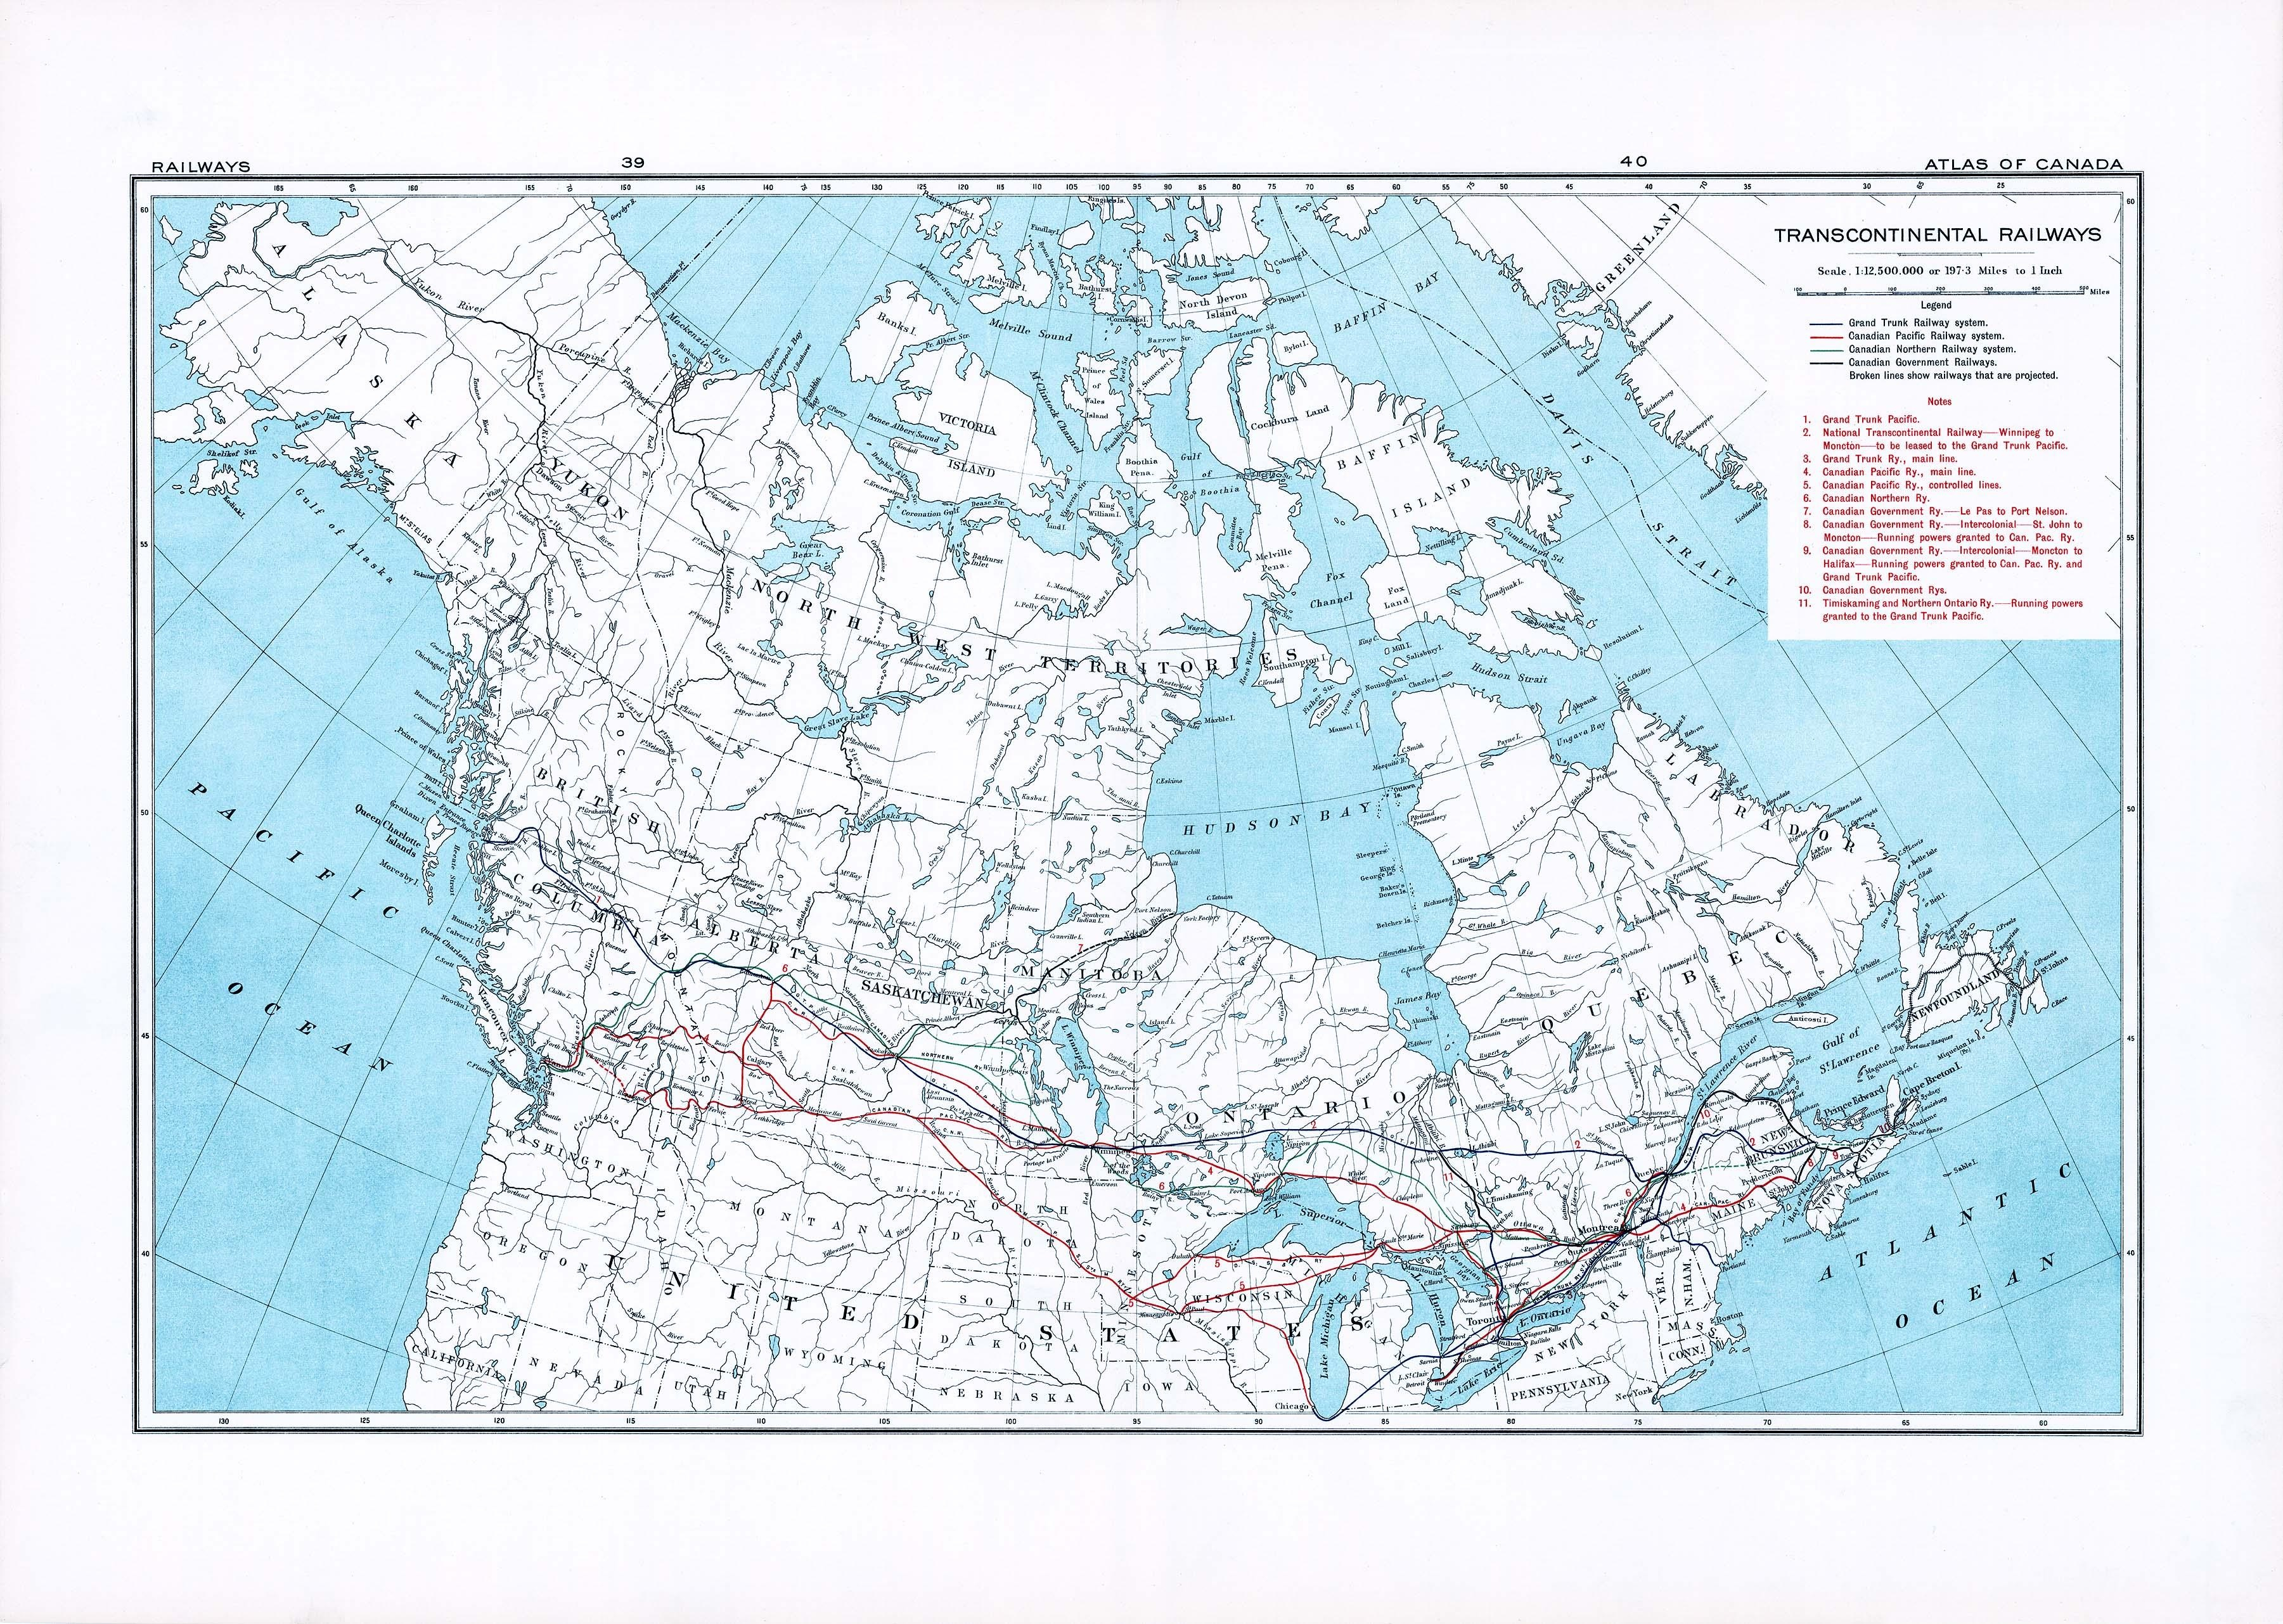 File:1915 Canada railway map page39 40.pdf - Wikimedia Commons on canadian pacific railway limited, northern pacific railway, bc rail, canadian refinery map, canadian pipeline map, canadian political map, union pacific railroad, grand trunk railway, canadian electricity map, canadian ports map, canadian water map, soo line railroad, canadian wind map, burlington northern railroad, canadian waterways map, canadian mining map, canadian maritime map, britrail map, via rail, rail transport, canadian sea map, great northern railway, canadian government map, canadian regional map, canadian safety map, canadian land map, illinois central railroad, canadian agricultural map, norfolk southern railway, canadian blank map, go transit, grand trunk western railroad, atchison, topeka and santa fe railway, kansas city southern railway, union station, canadian train routes, csx transportation, chicago, burlington and quincy railroad, canadian empire map,